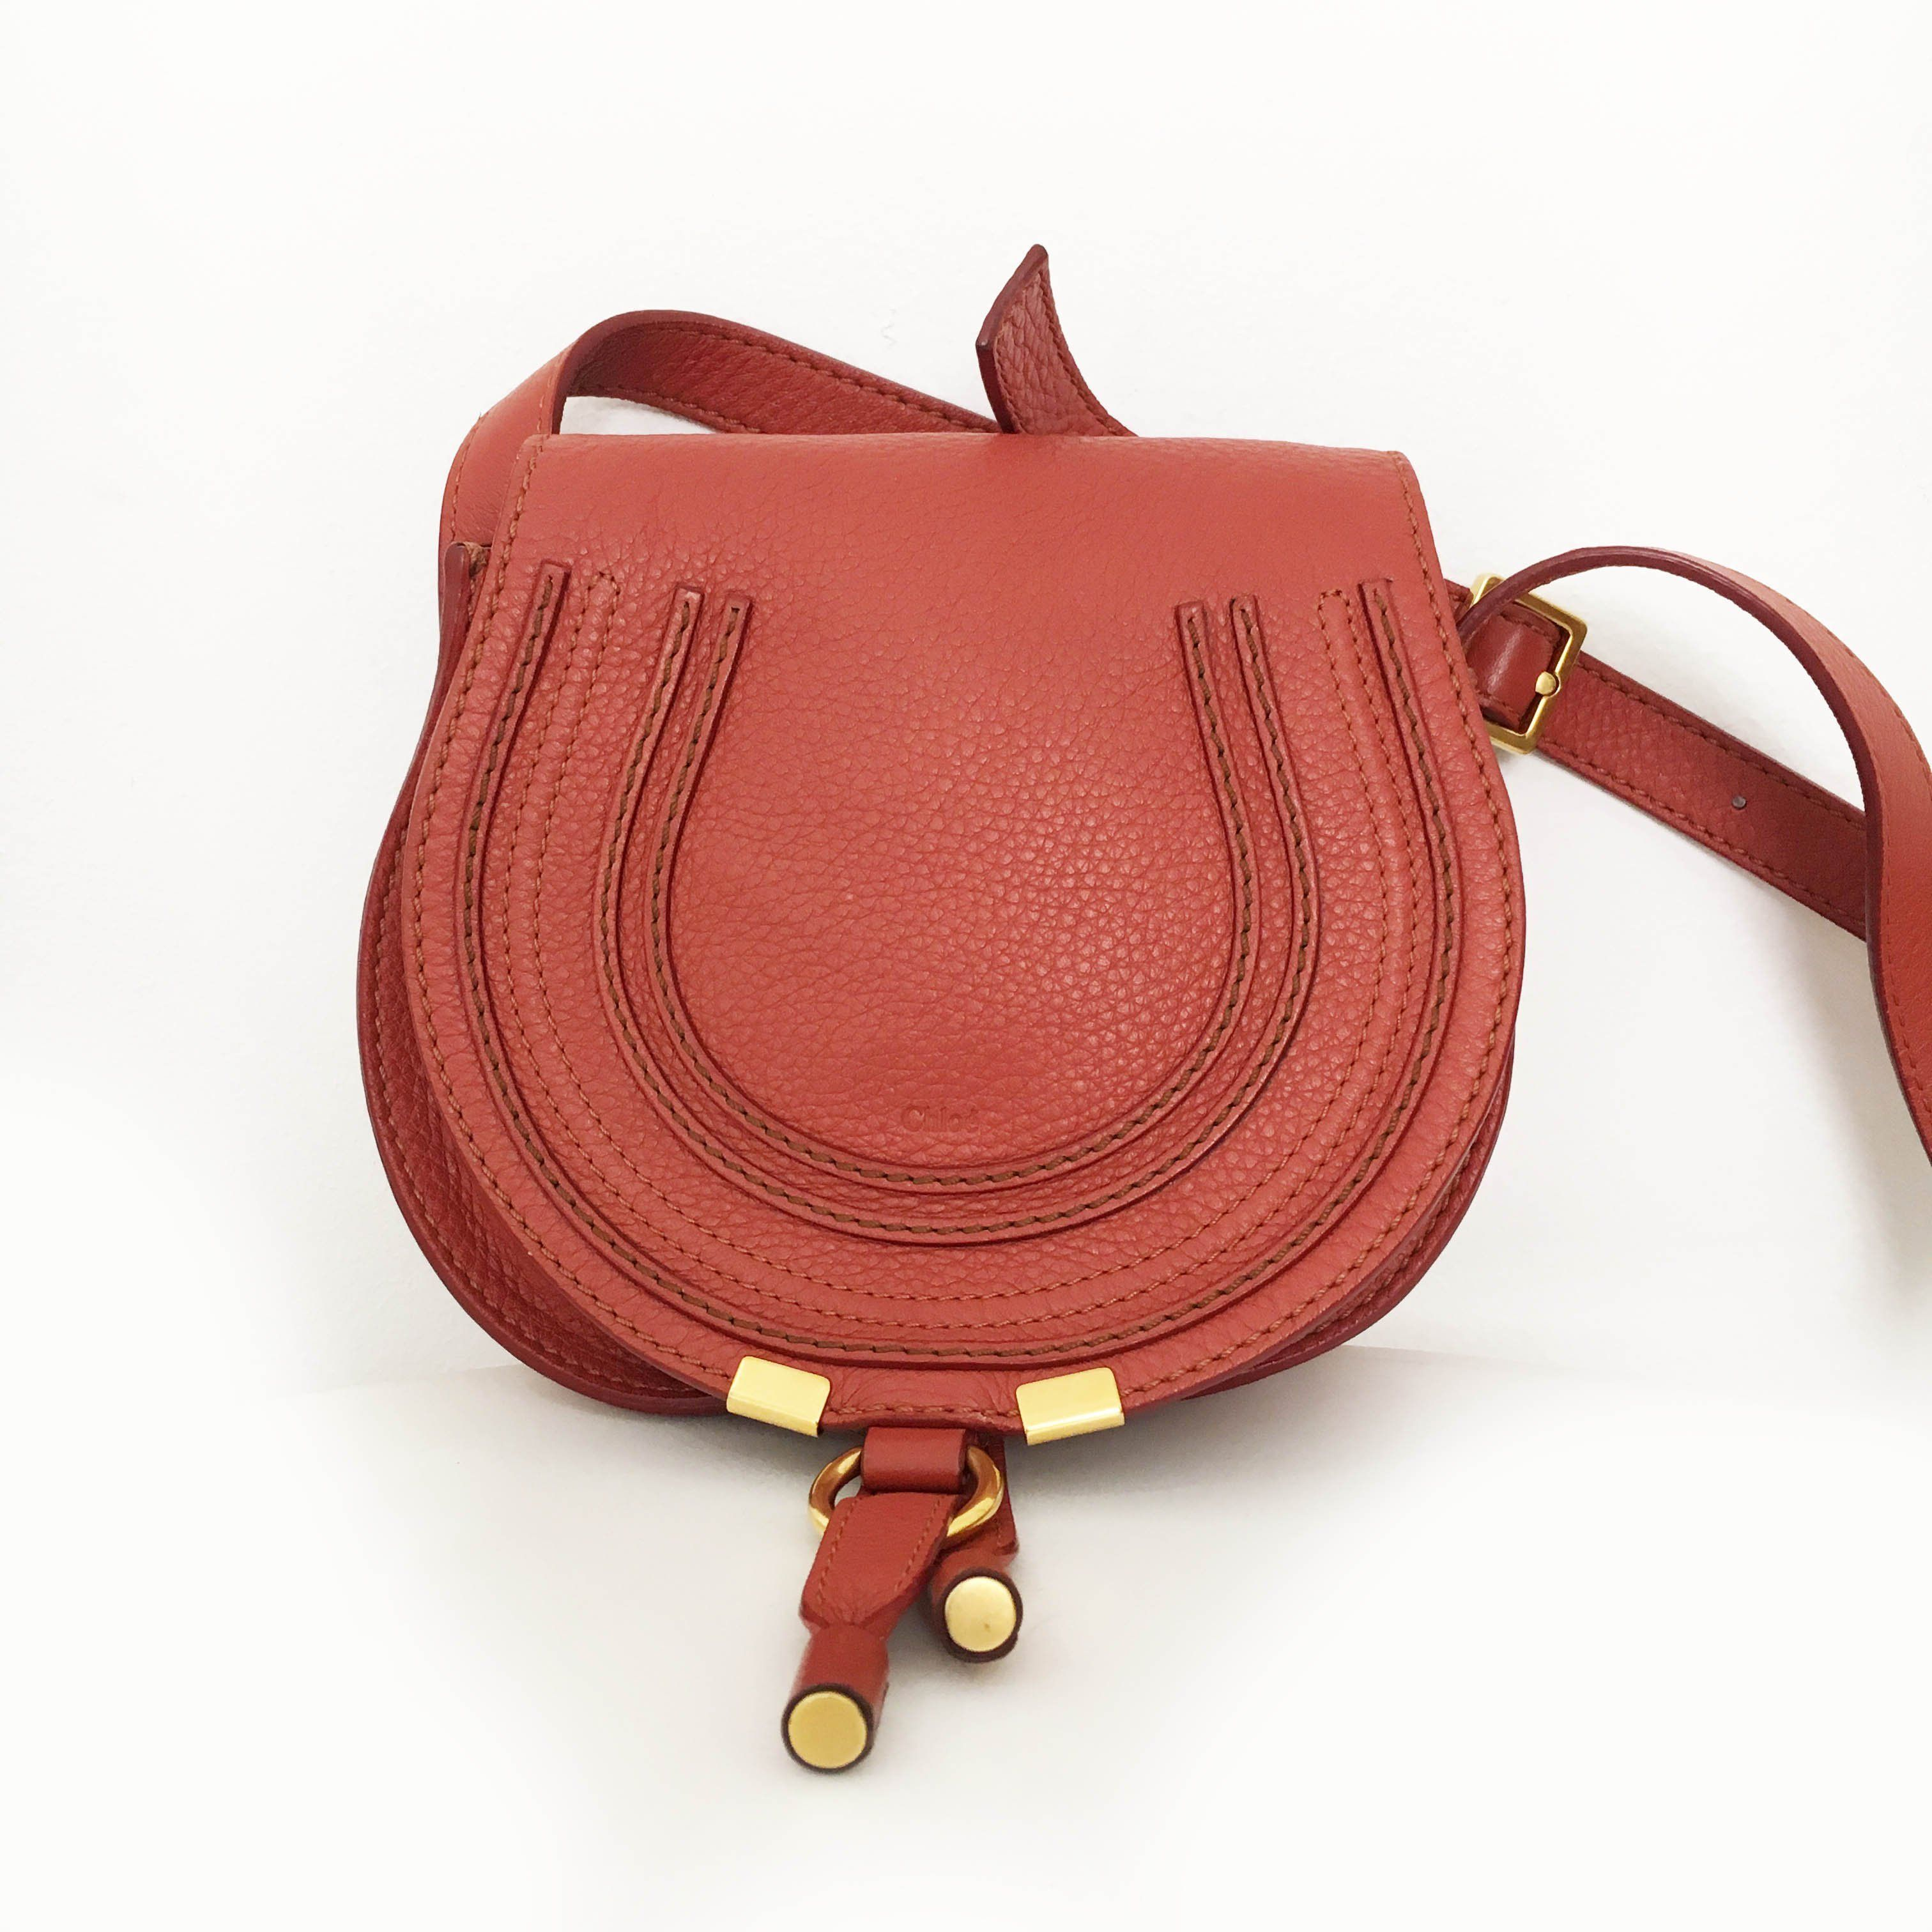 Chloé Marcie Small Leather Cross Body bag